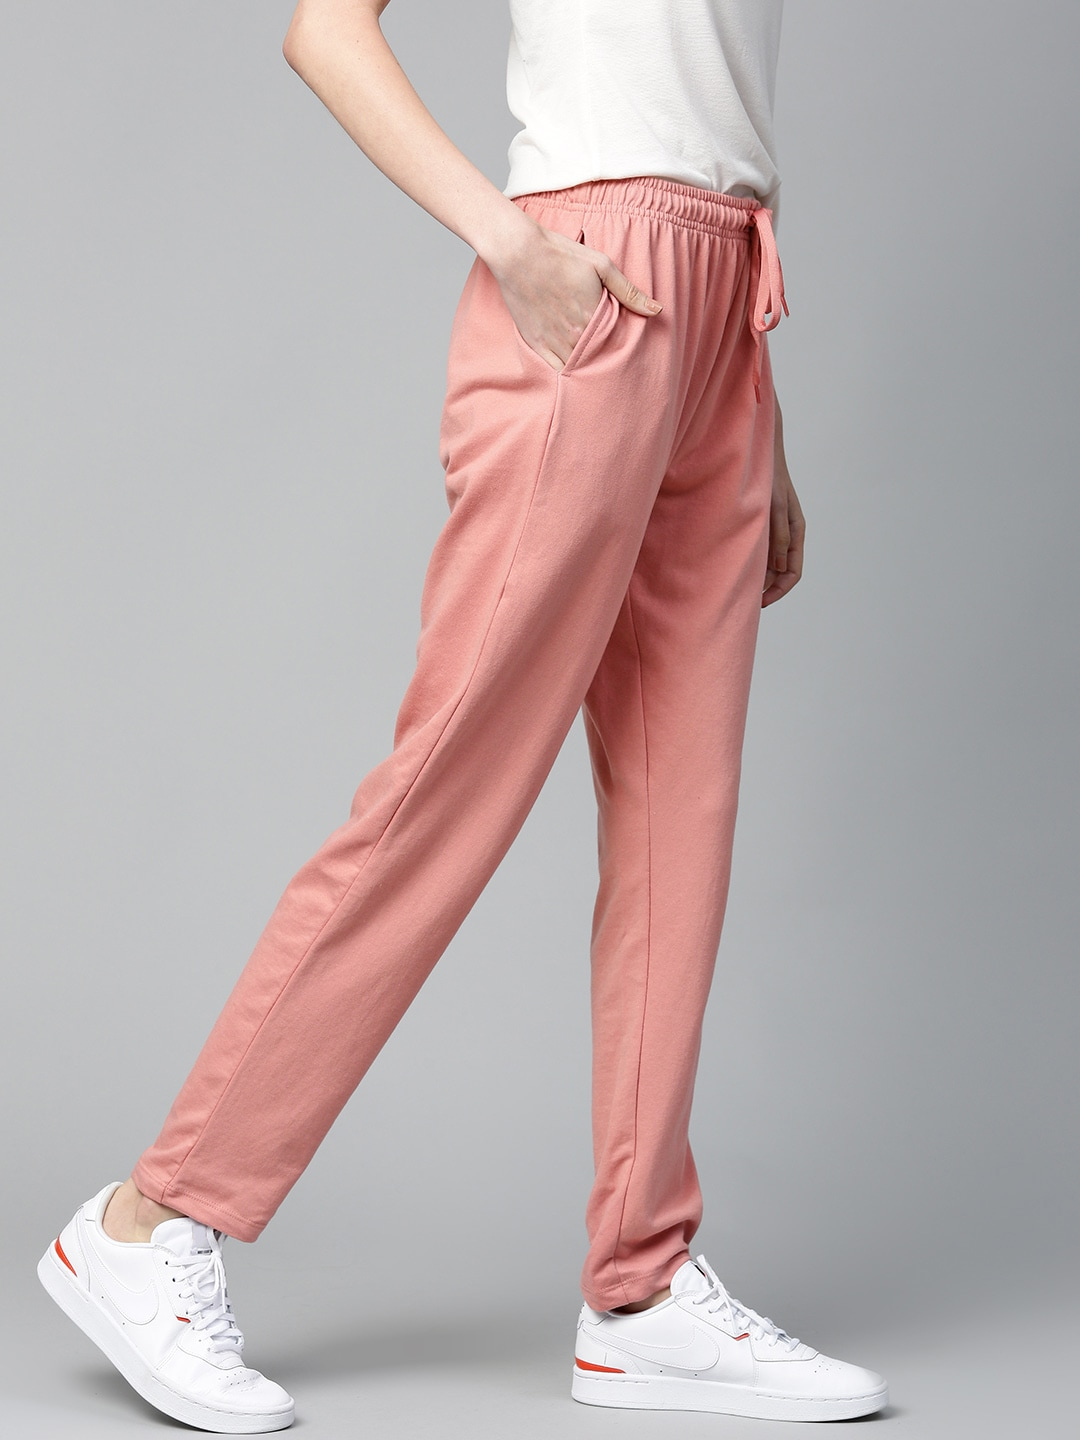 Mast  Harbour Women Dusty Pink Solid Track Pants-12332478